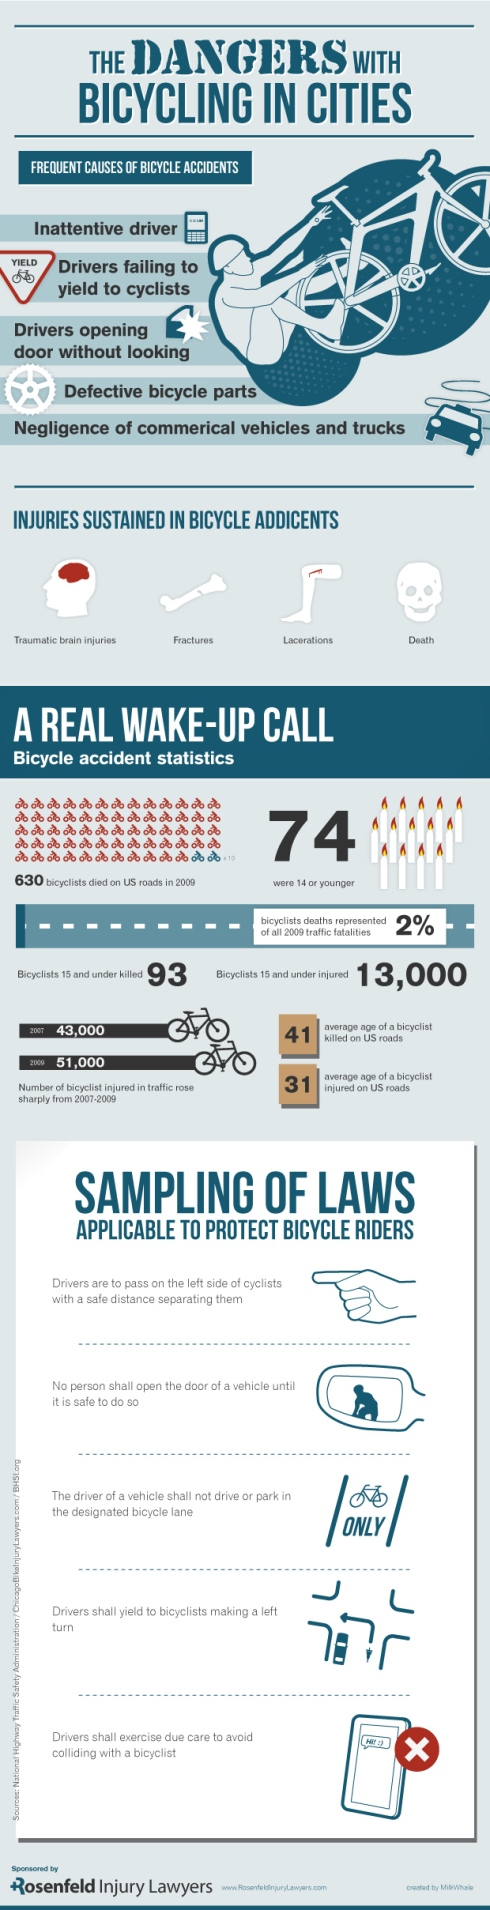 Chicago Bicycle Injury Attorney